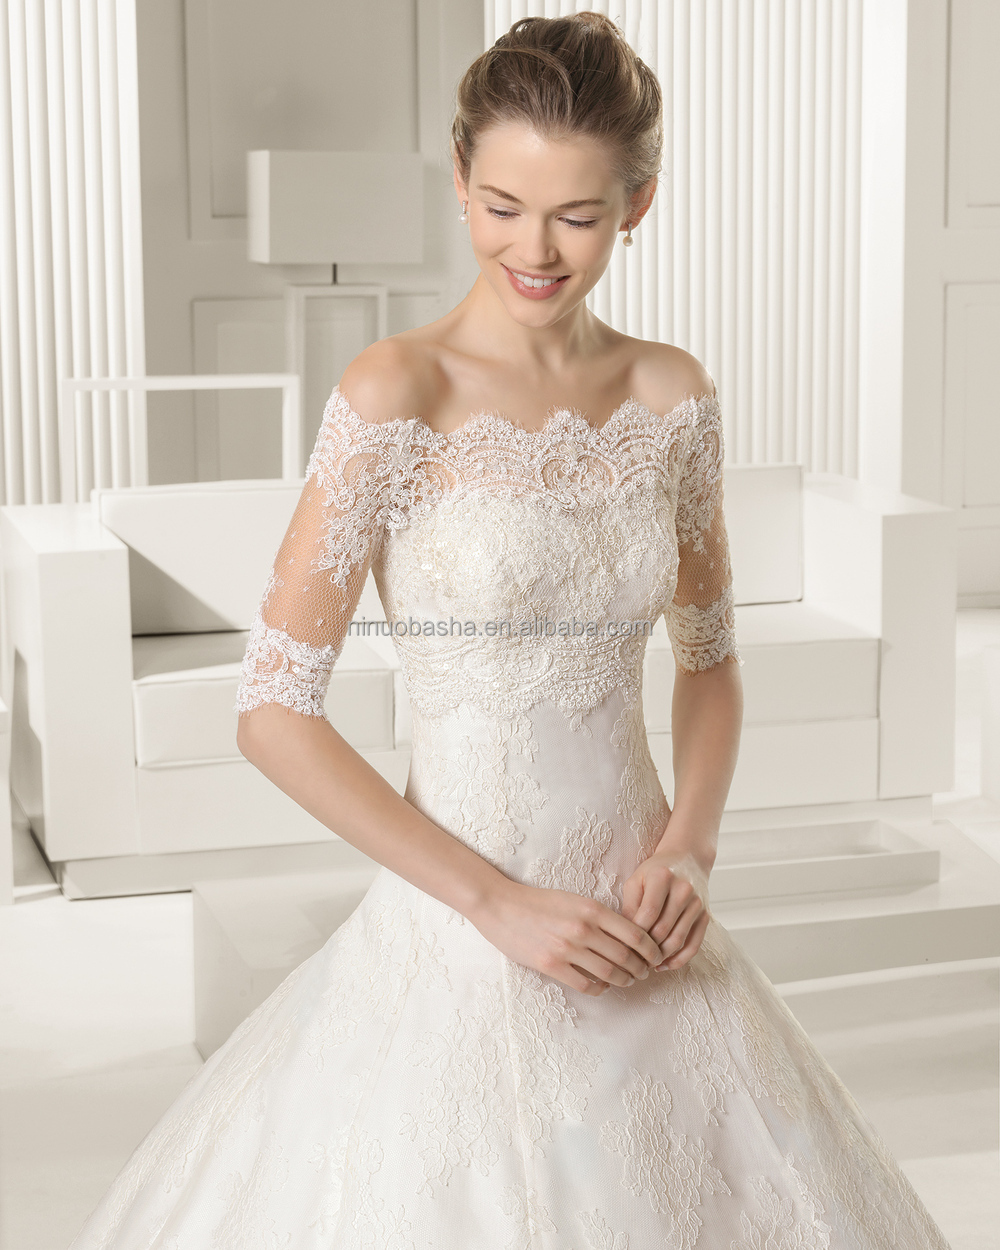 Famous Designer 2015 Lace Ball Gown Wedding Dress With Off-shoulder ...